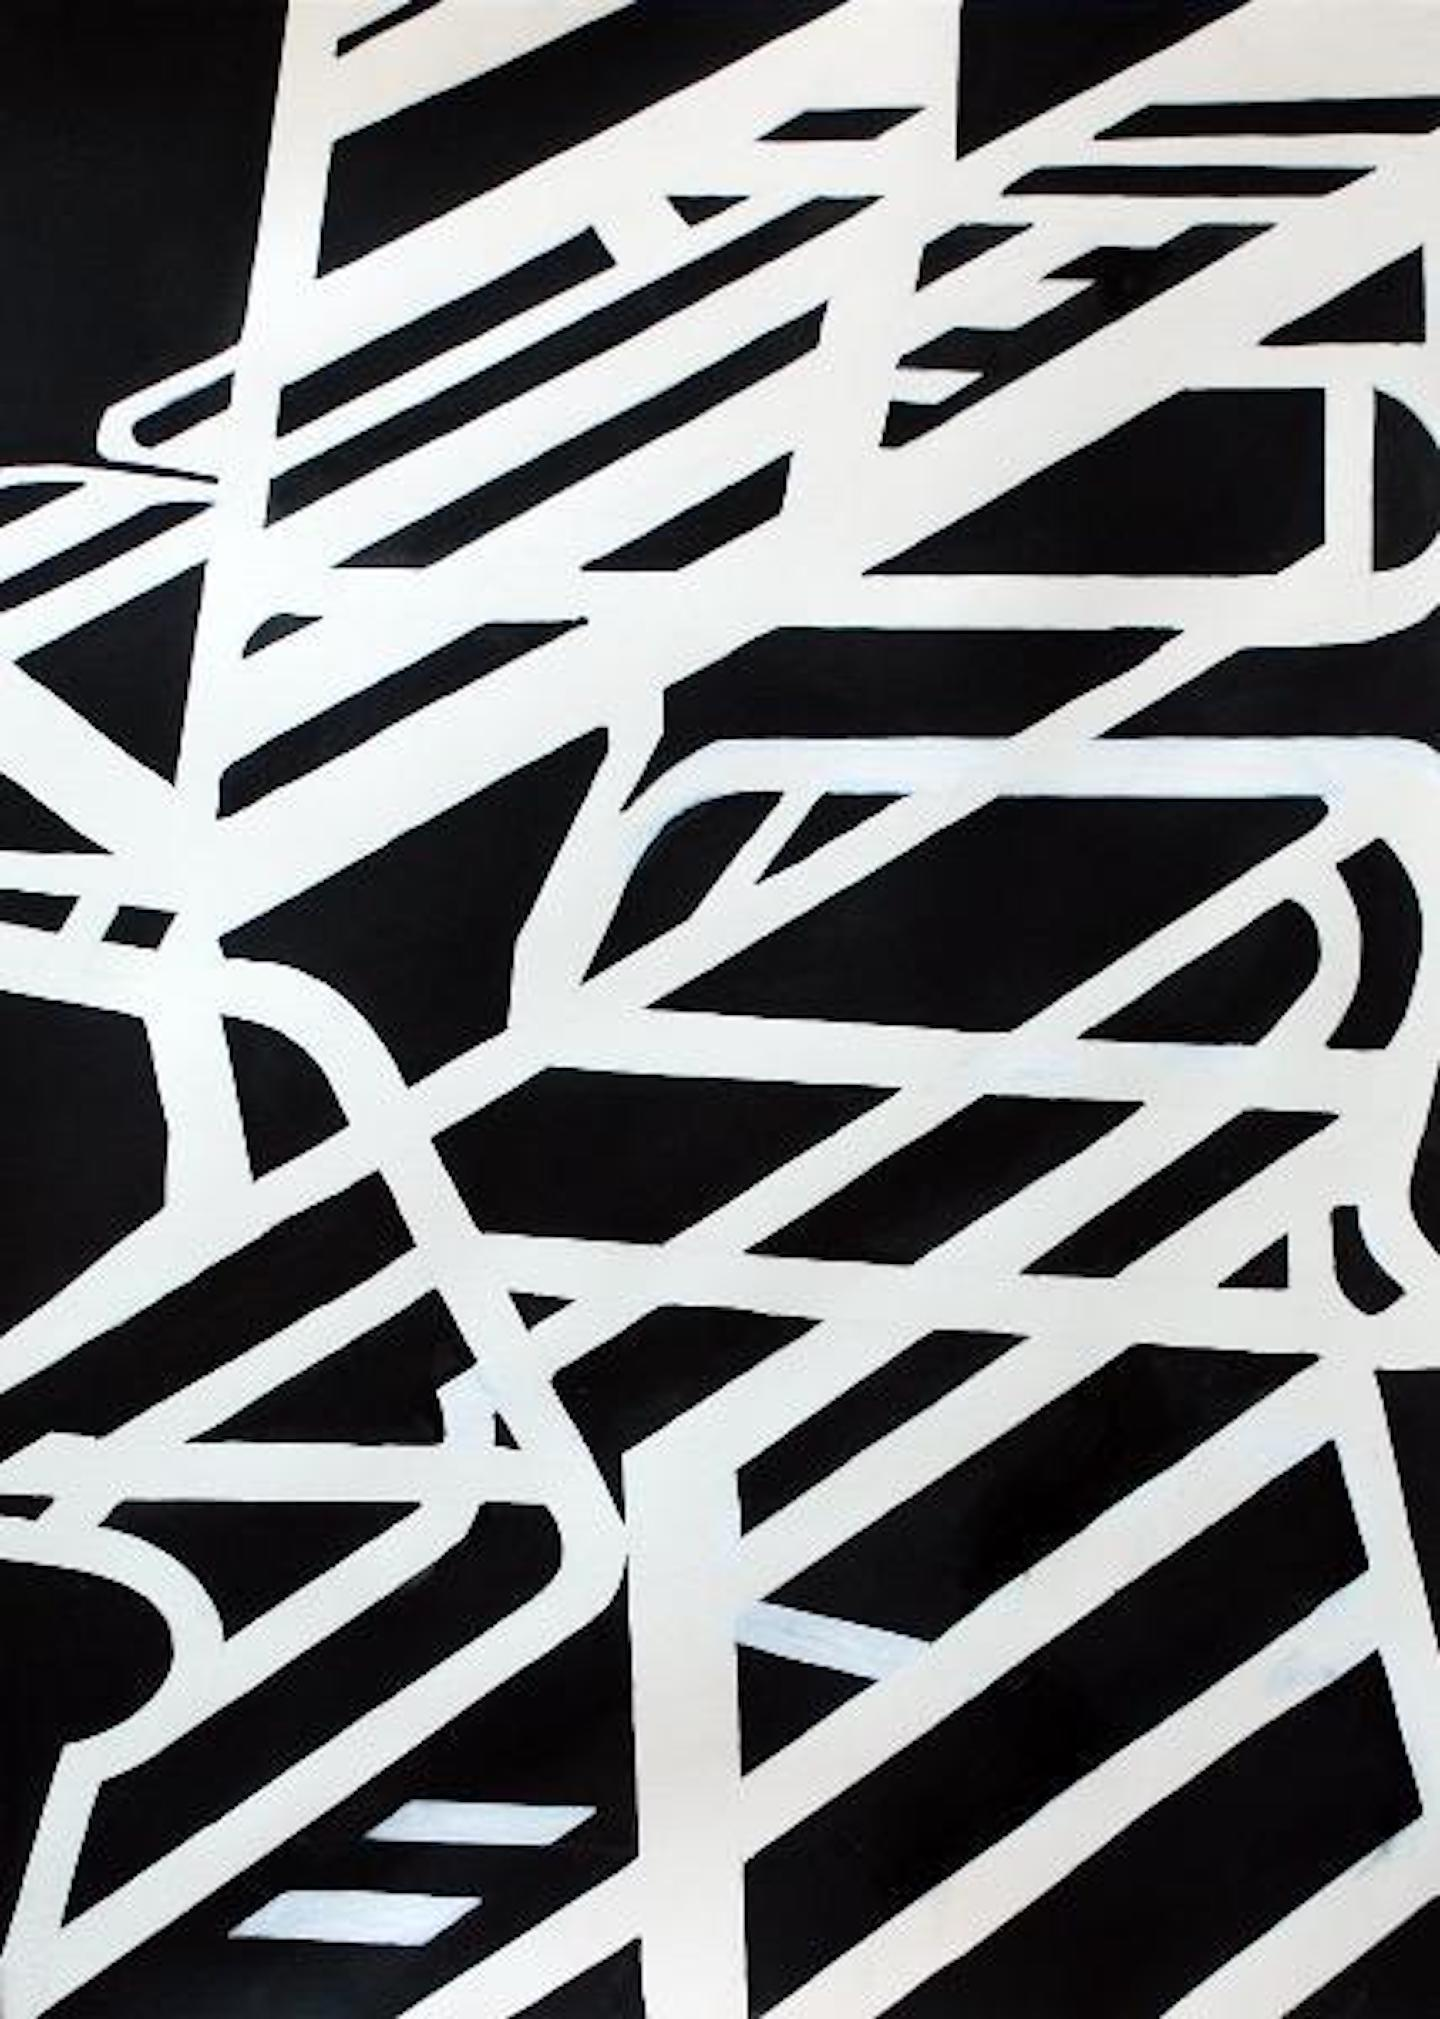 Chair 5, black and white abstract painting on paper by Lisa Petker-Mintz